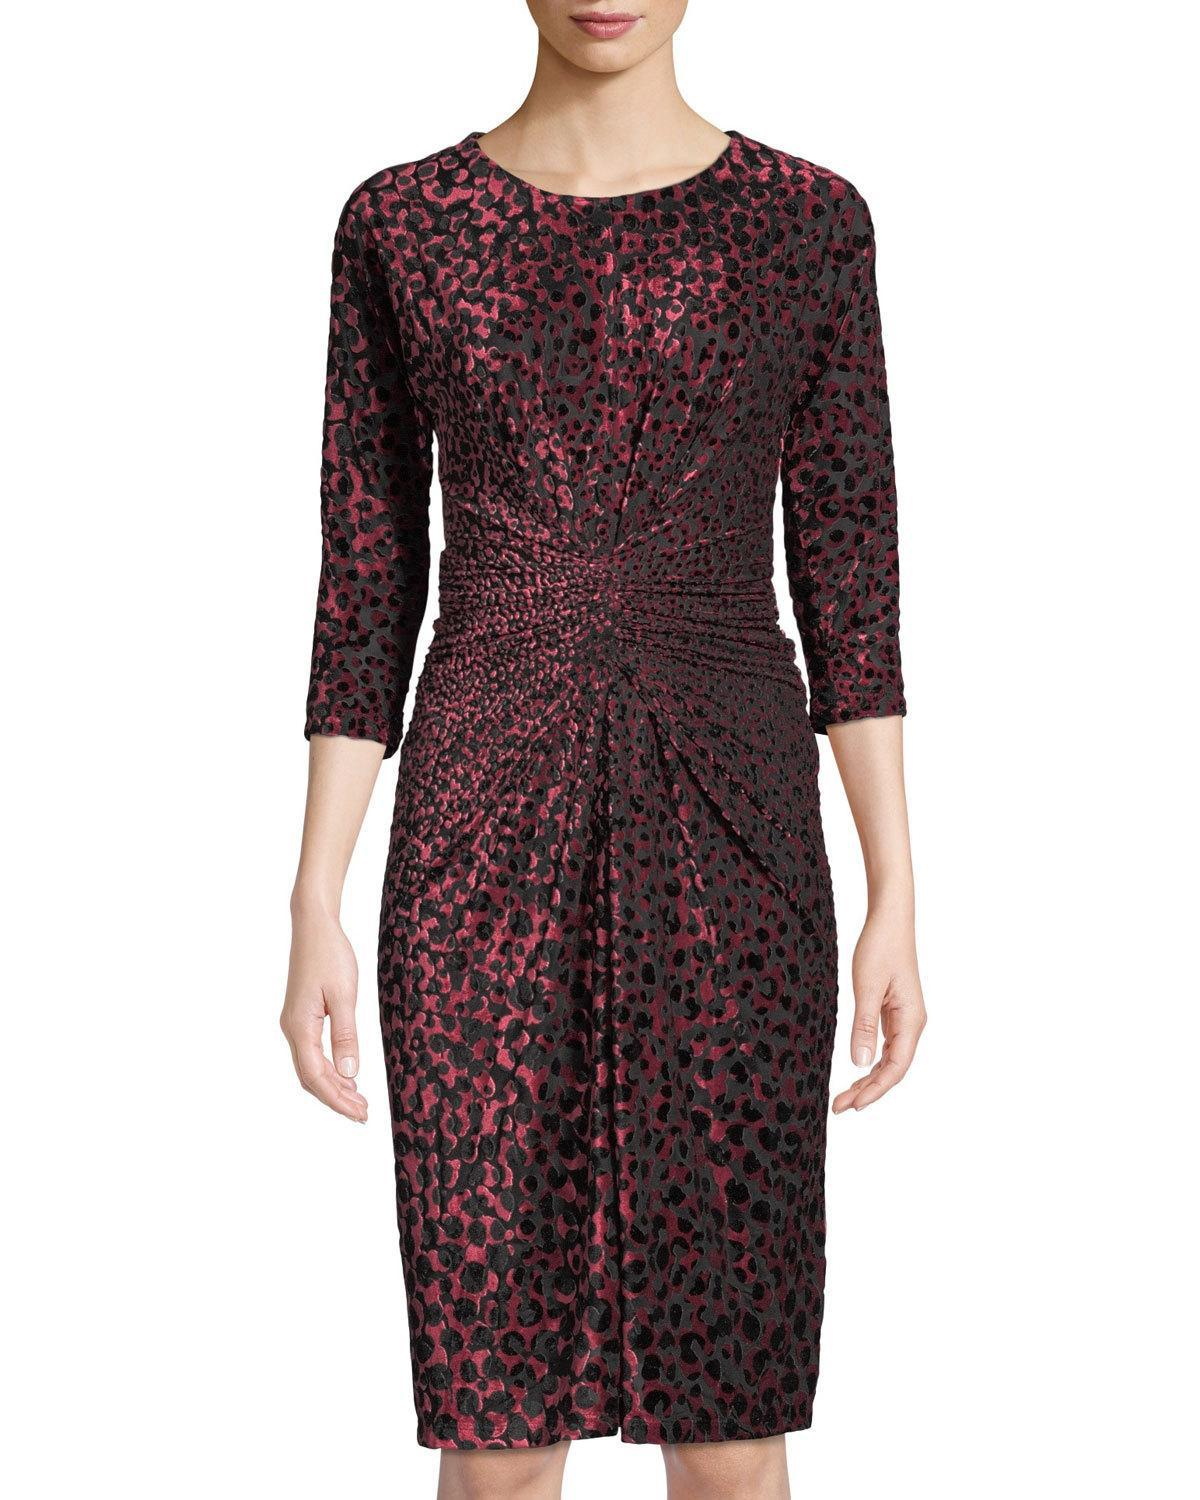 75ab5d3e106 Lyst - Neiman Marcus Animal-print Ruched Burnout Dress in Black